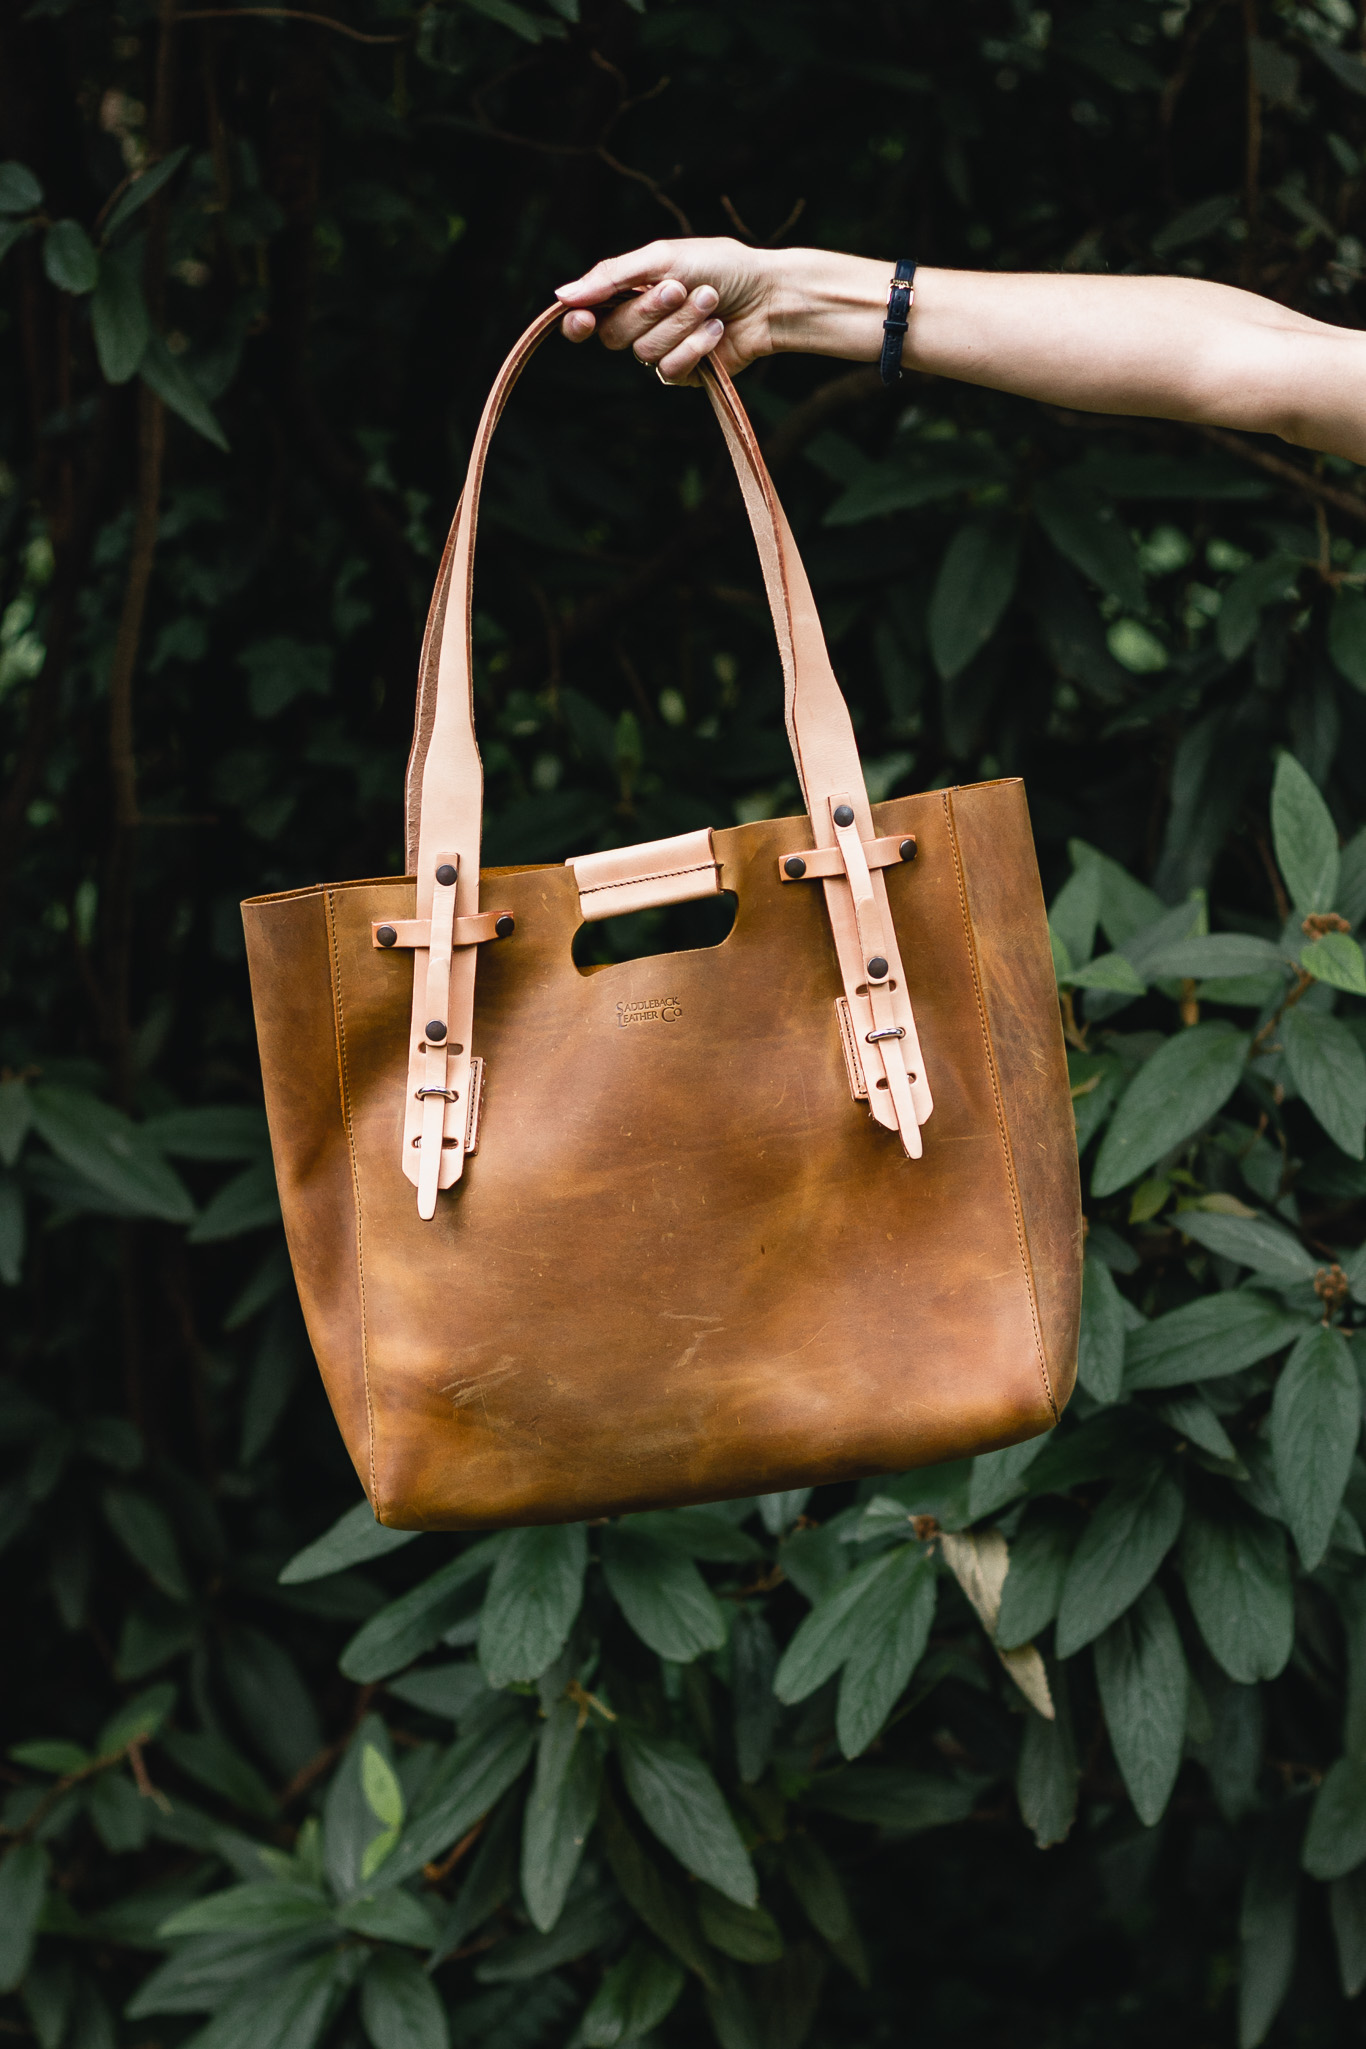 Saddleback Leather everyday tote